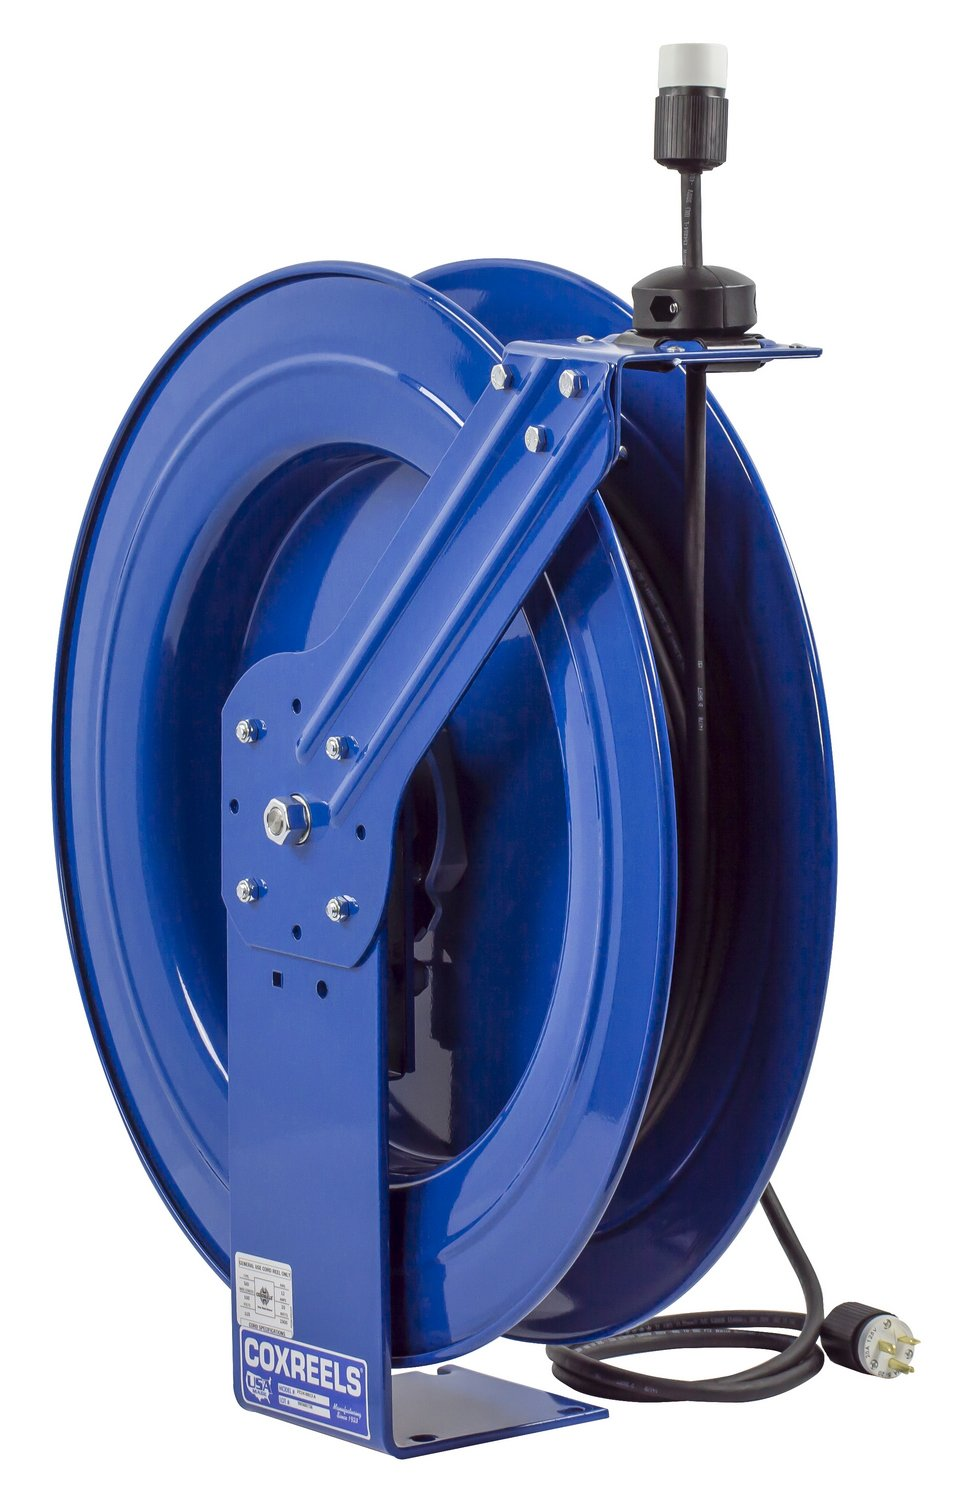 Coxreels PC24-0012-A Power Cord Spring Rewind Reels: Single Industrial Receptacle, 100' cord, 12 AWG by Coxreels